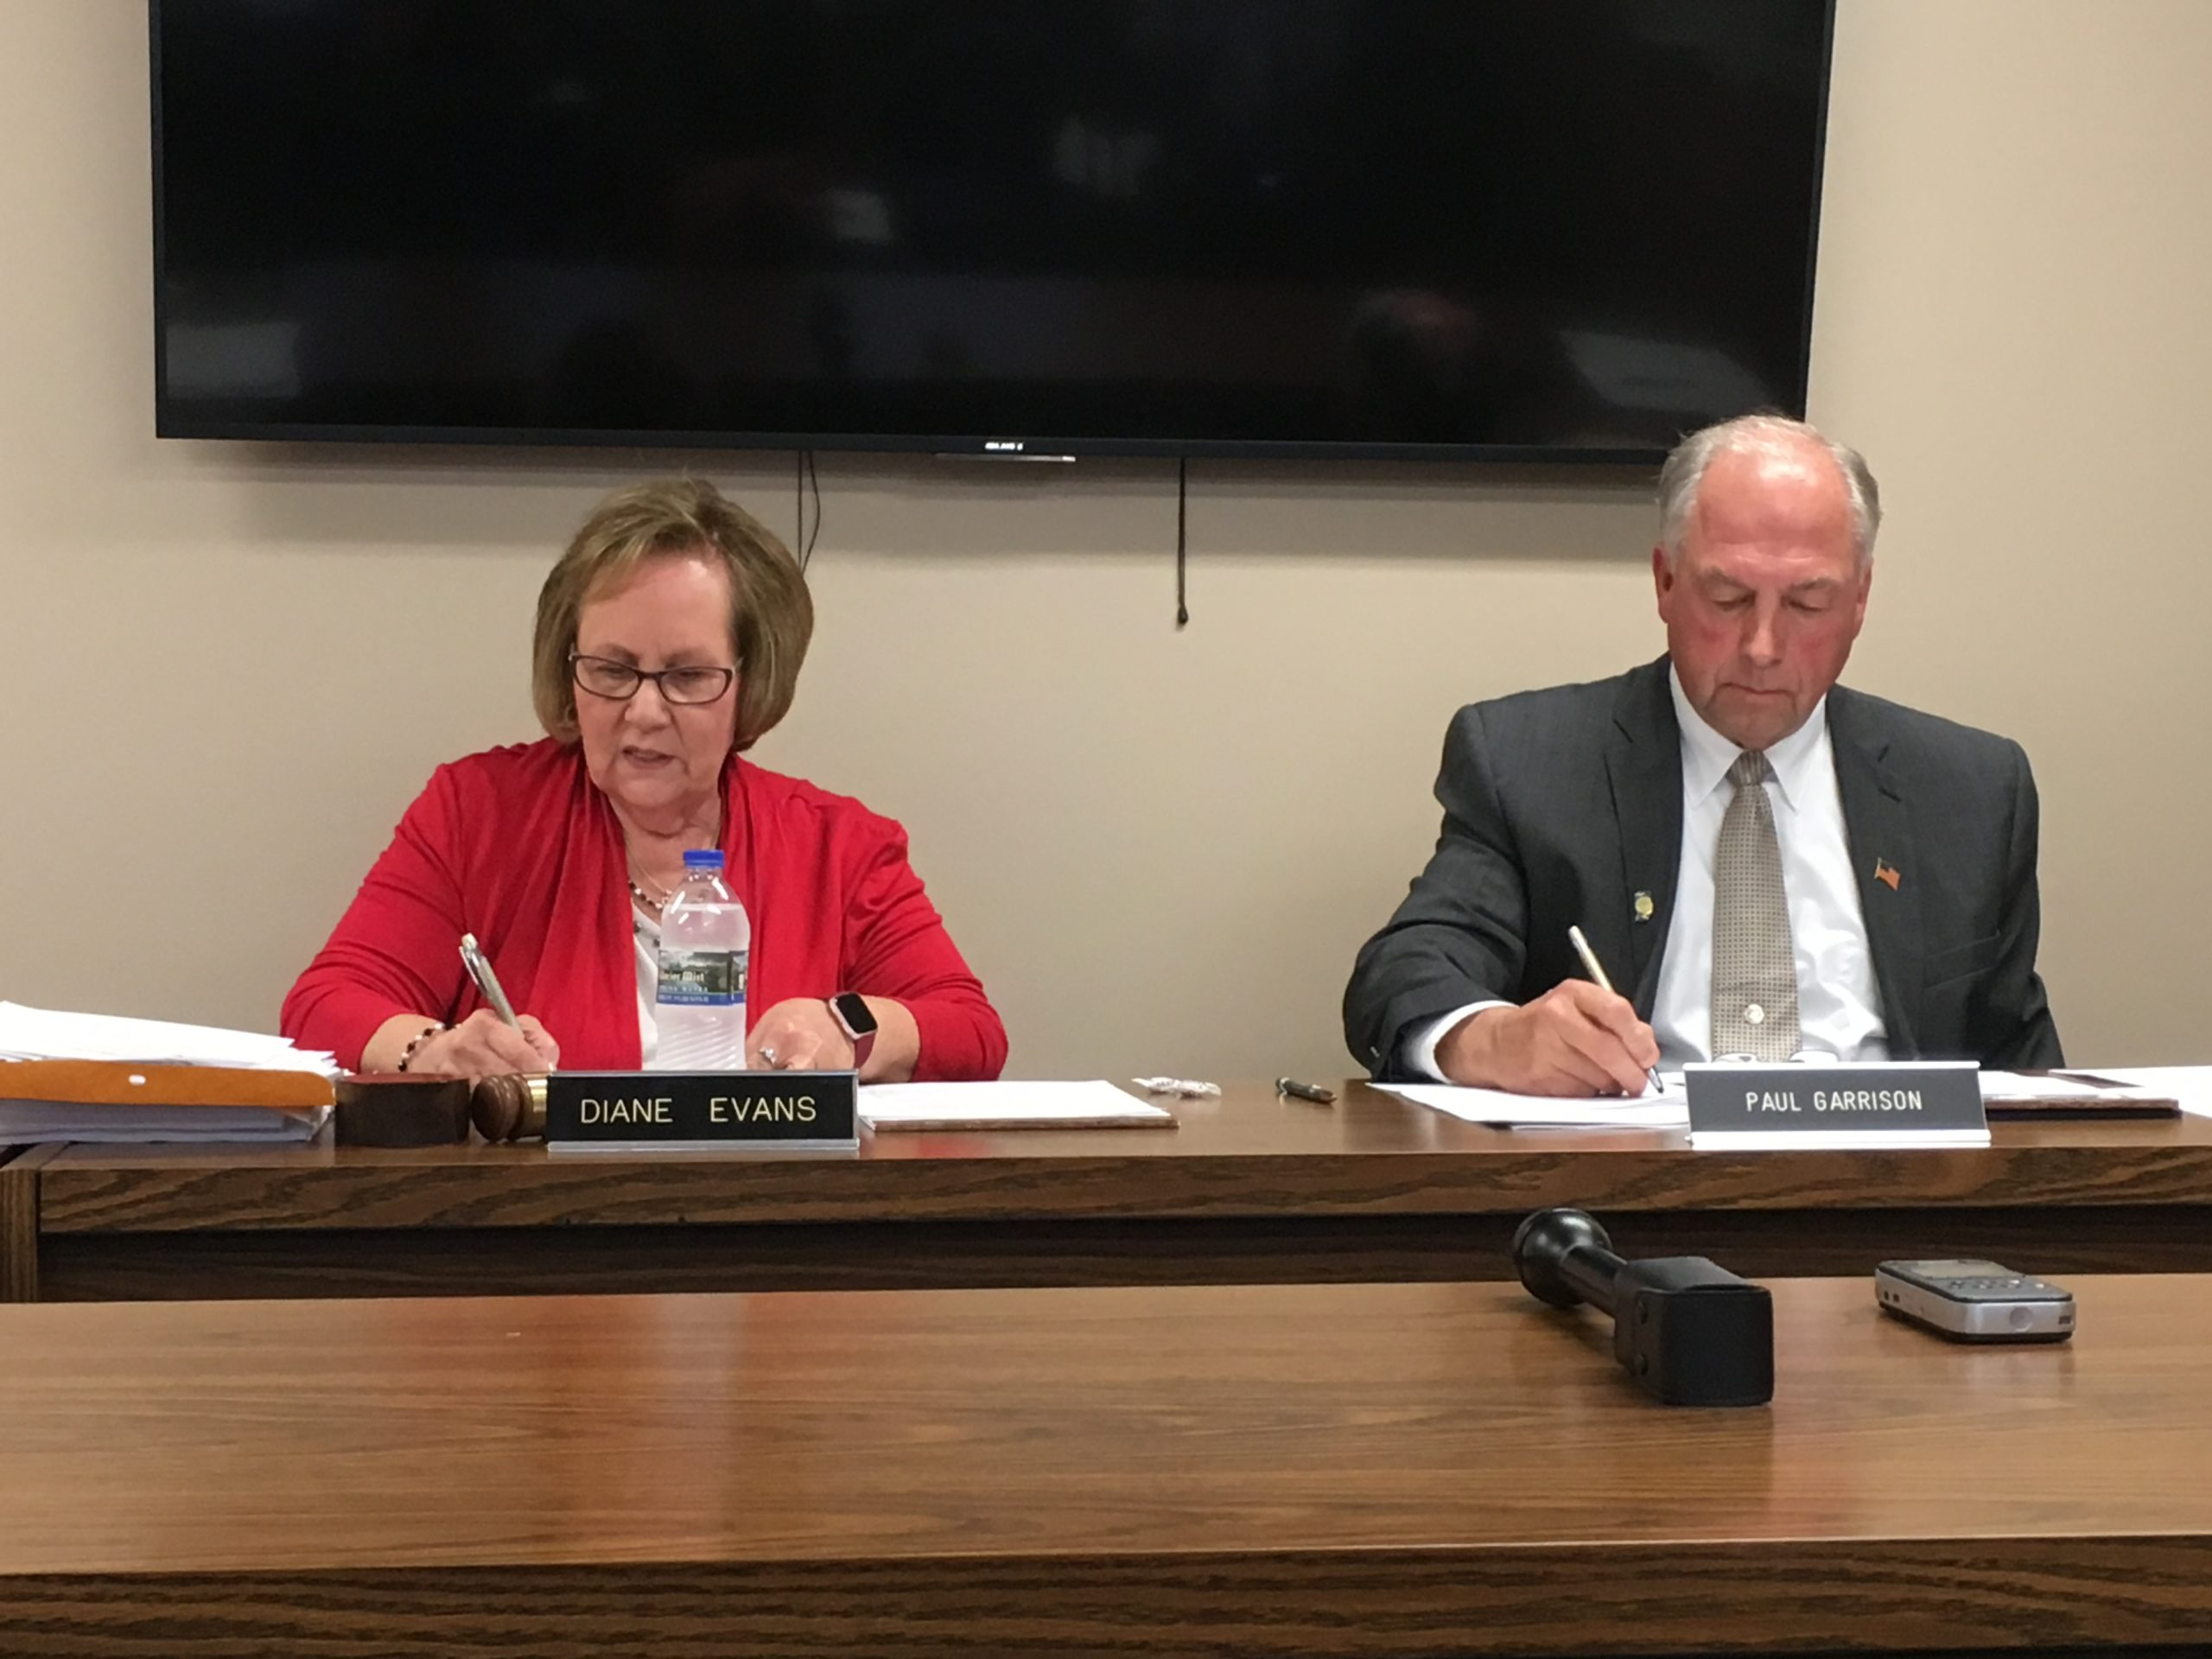 The Daleville school board revoked Indiana Virtual School and Indiana Virtual Pathways Academy's charters on Aug. 26, 2019. From left: Daleville board president Diane Evans and Superintendent Paul Garrison.